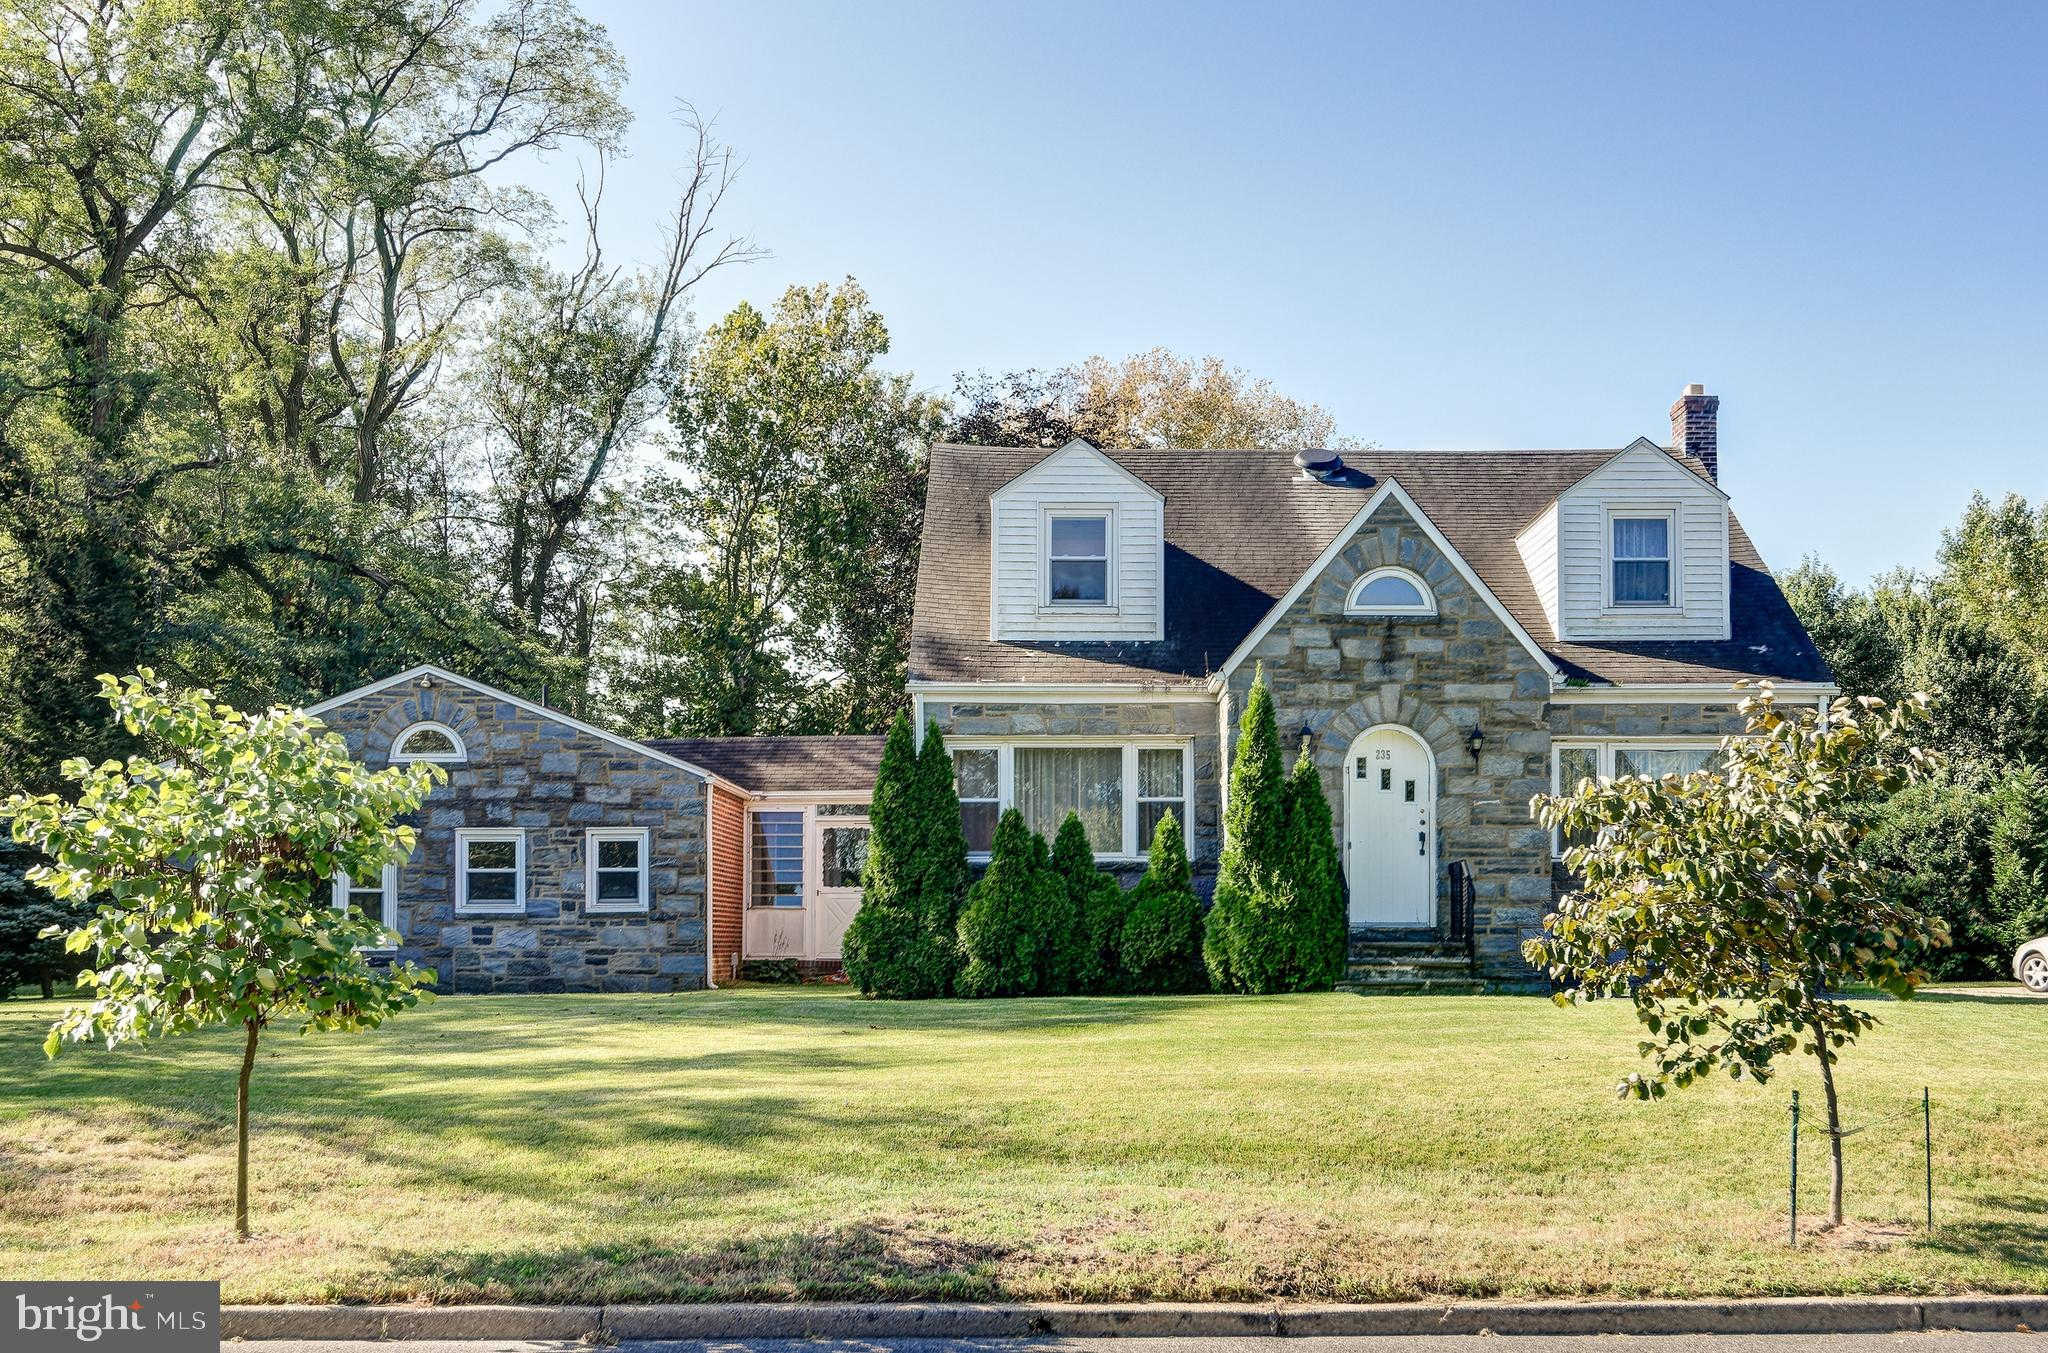 235 S Park Drive, Haddon Township, NJ 08108 has an Open House on  Sunday, November 10, 2019 1:00 PM to 3:00 PM